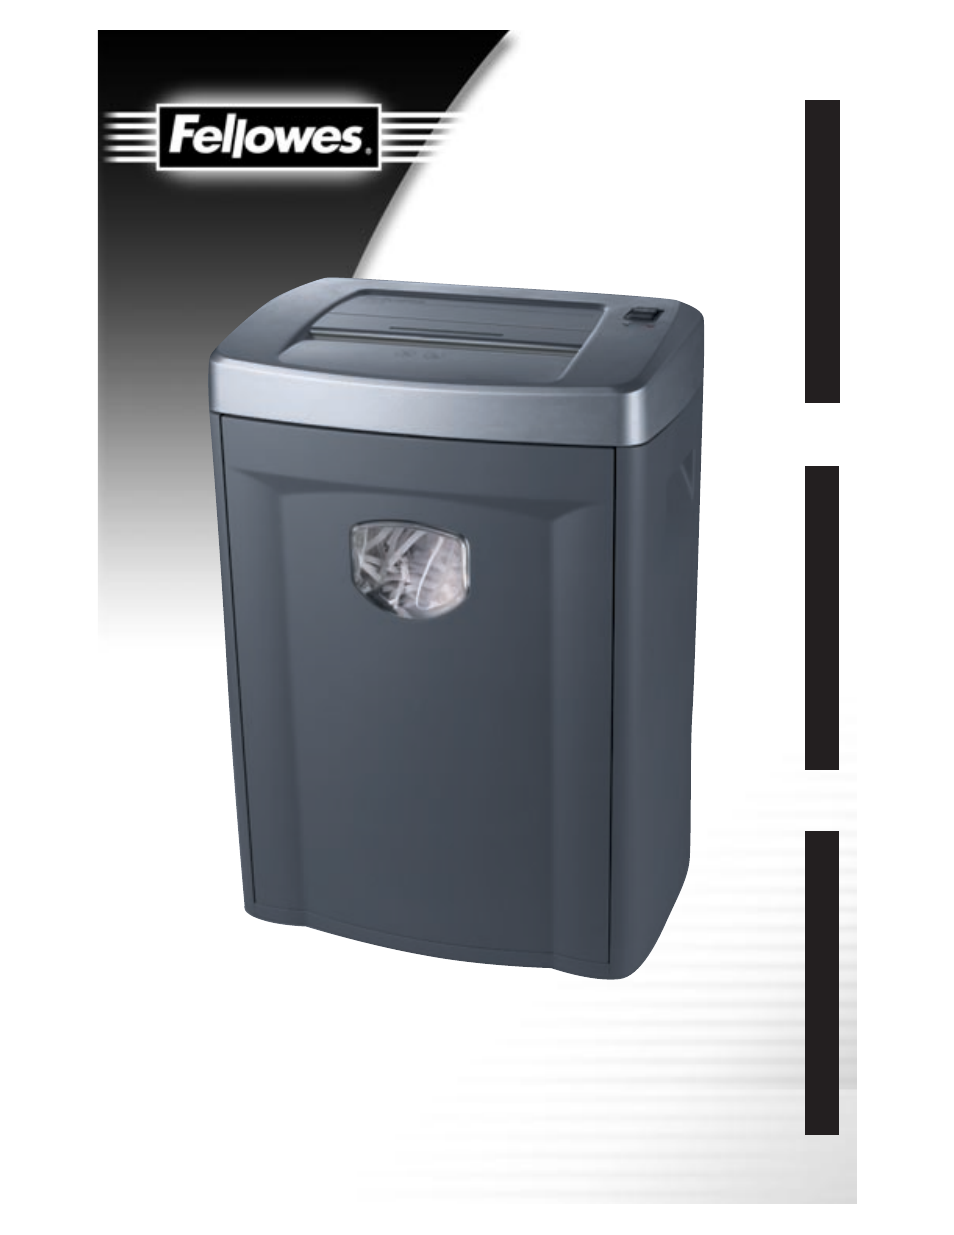 fellowes ps70 2 user manual 8 pages